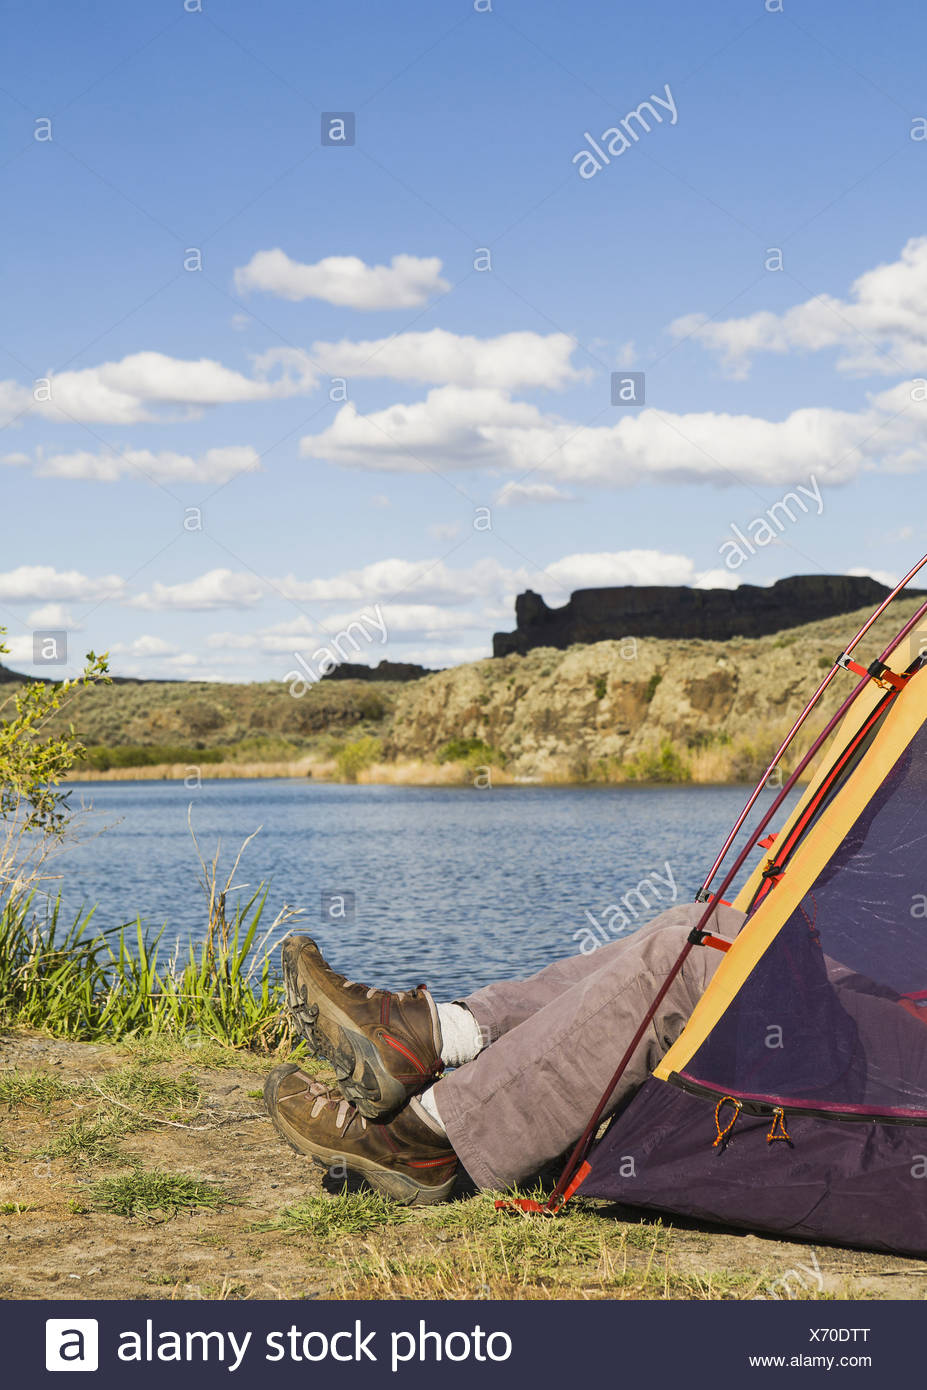 A small tent pitched by the shores of the Sun Lakes in Sun Lakes State Park A man's feet in loafers sticking out - Stock Image